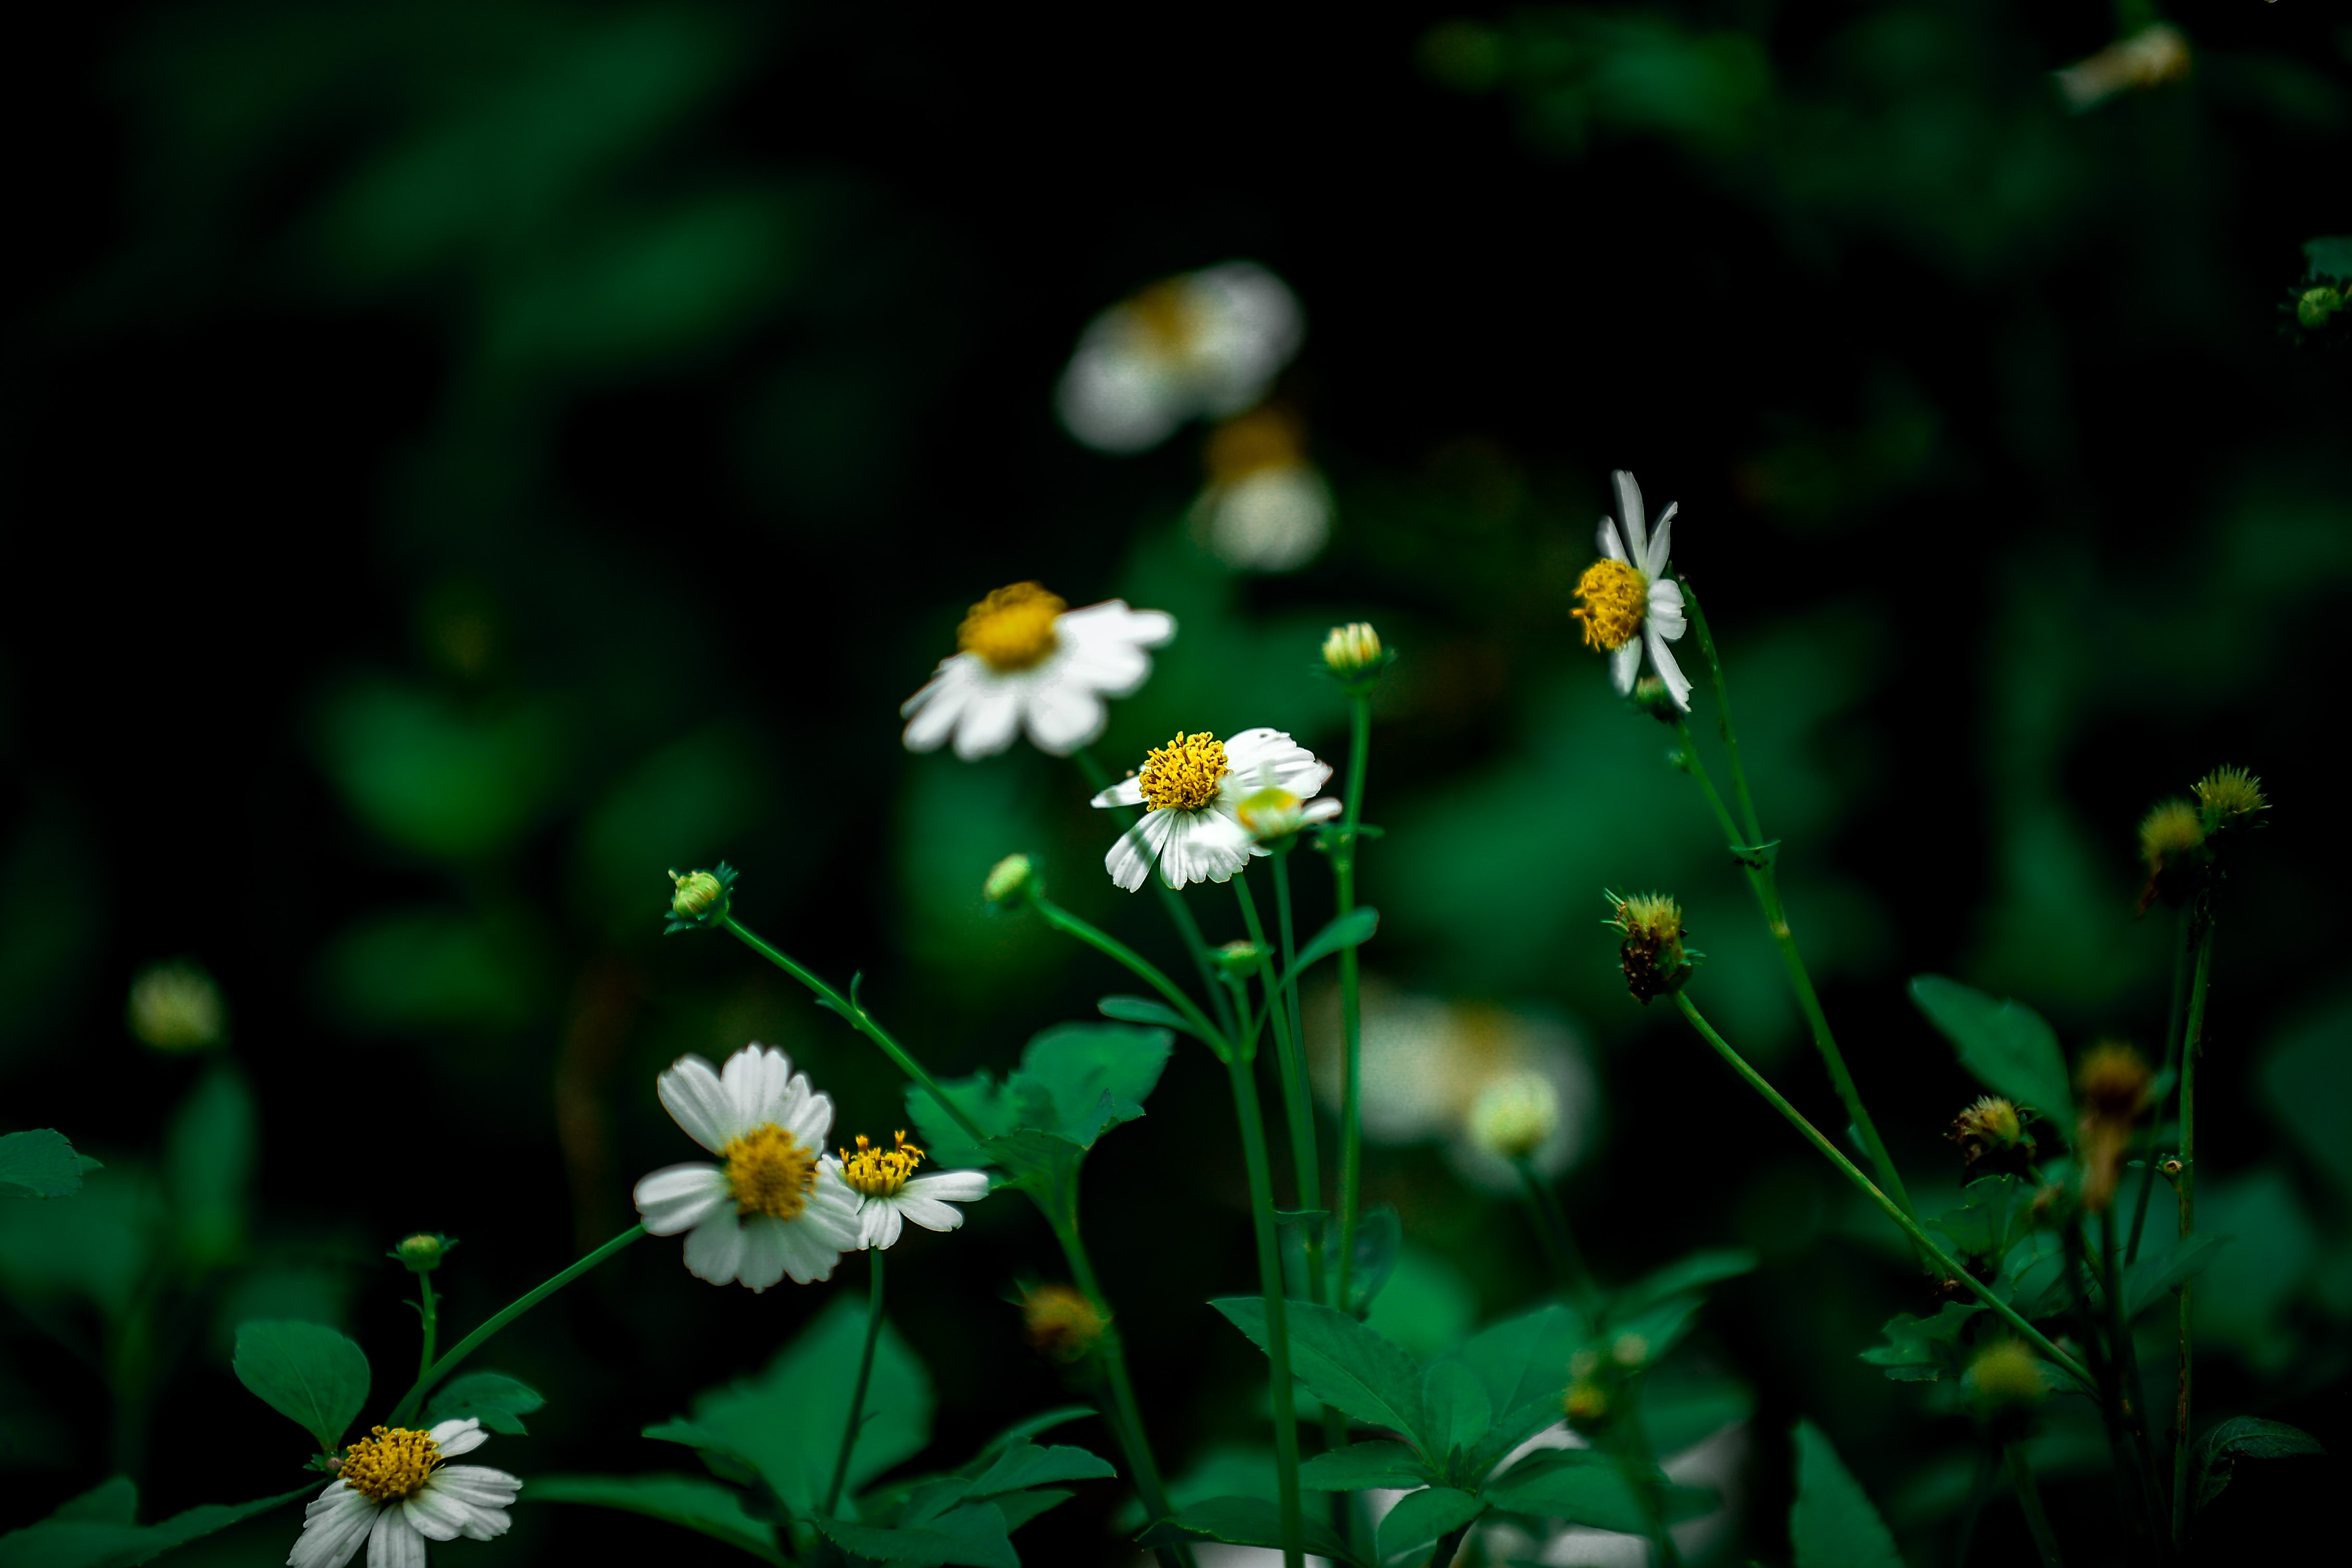 Wild daisies grow in a green field